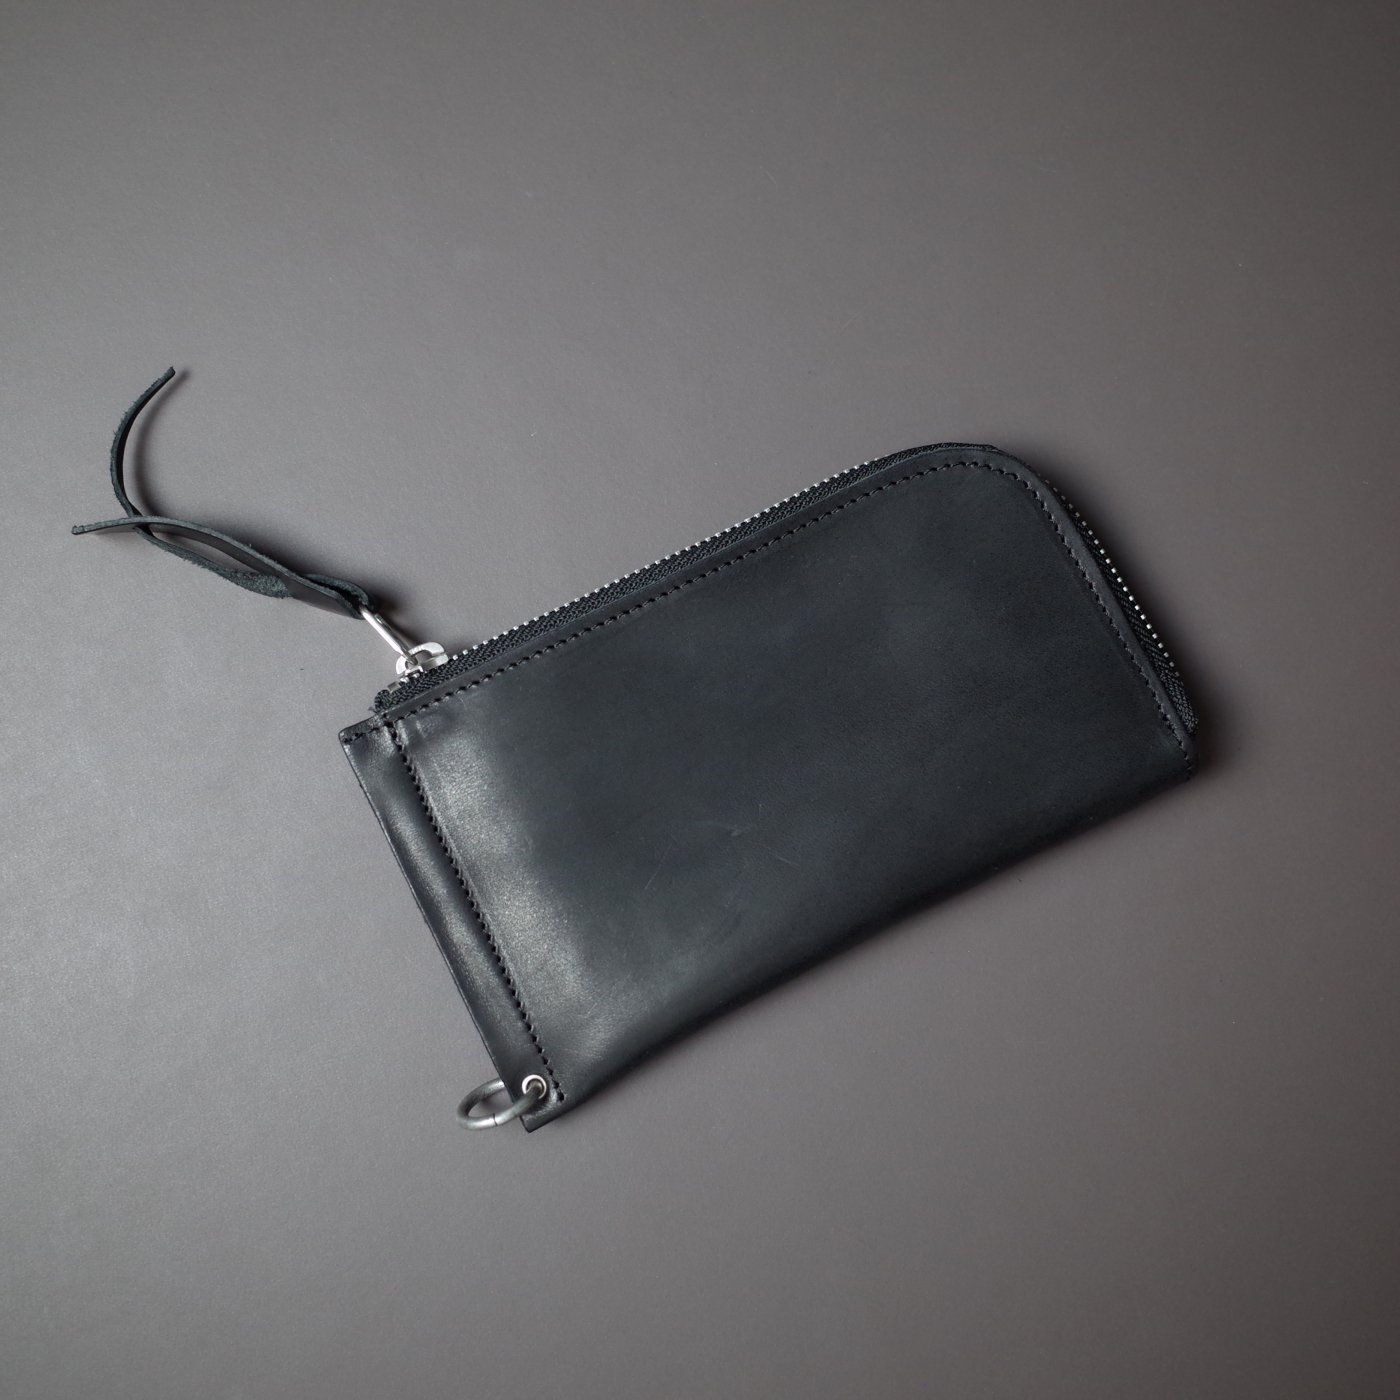 DELLE COSE デレコーゼ -ZIPPEPED WALLET-BLACK-